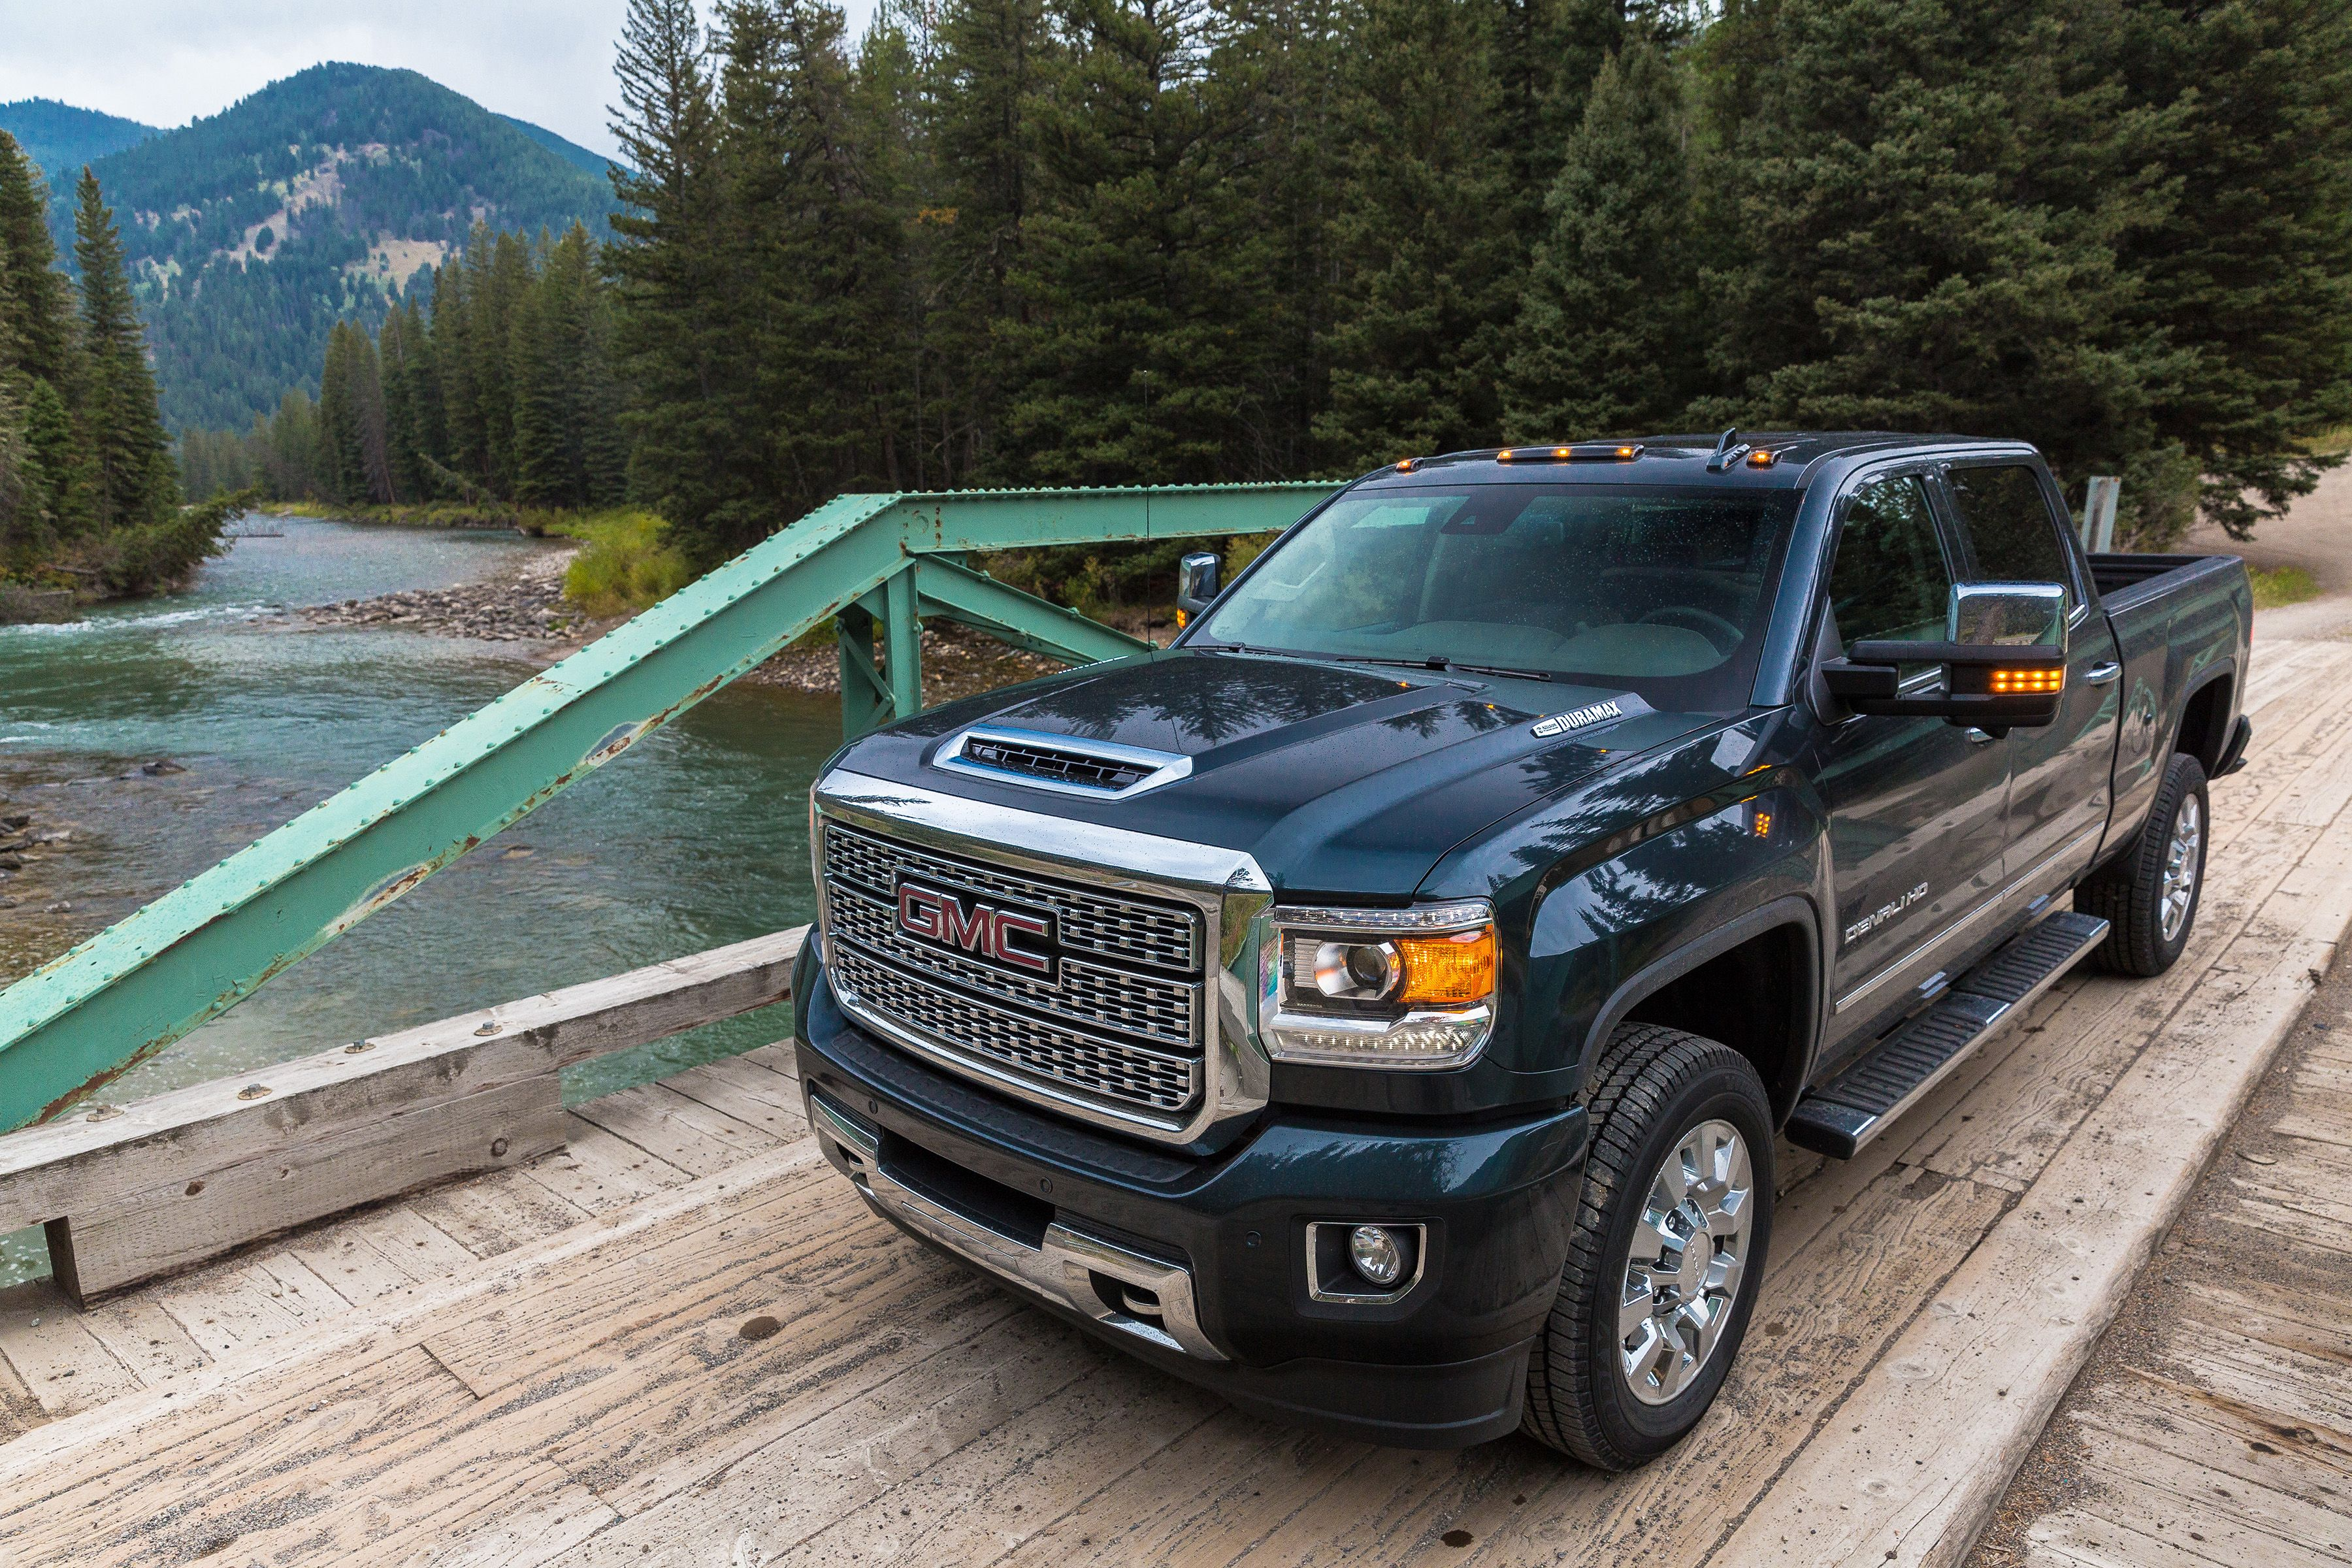 Gmc Is Slashing Up To 4 500 Off The Gmc Sierra Hd In October 2018